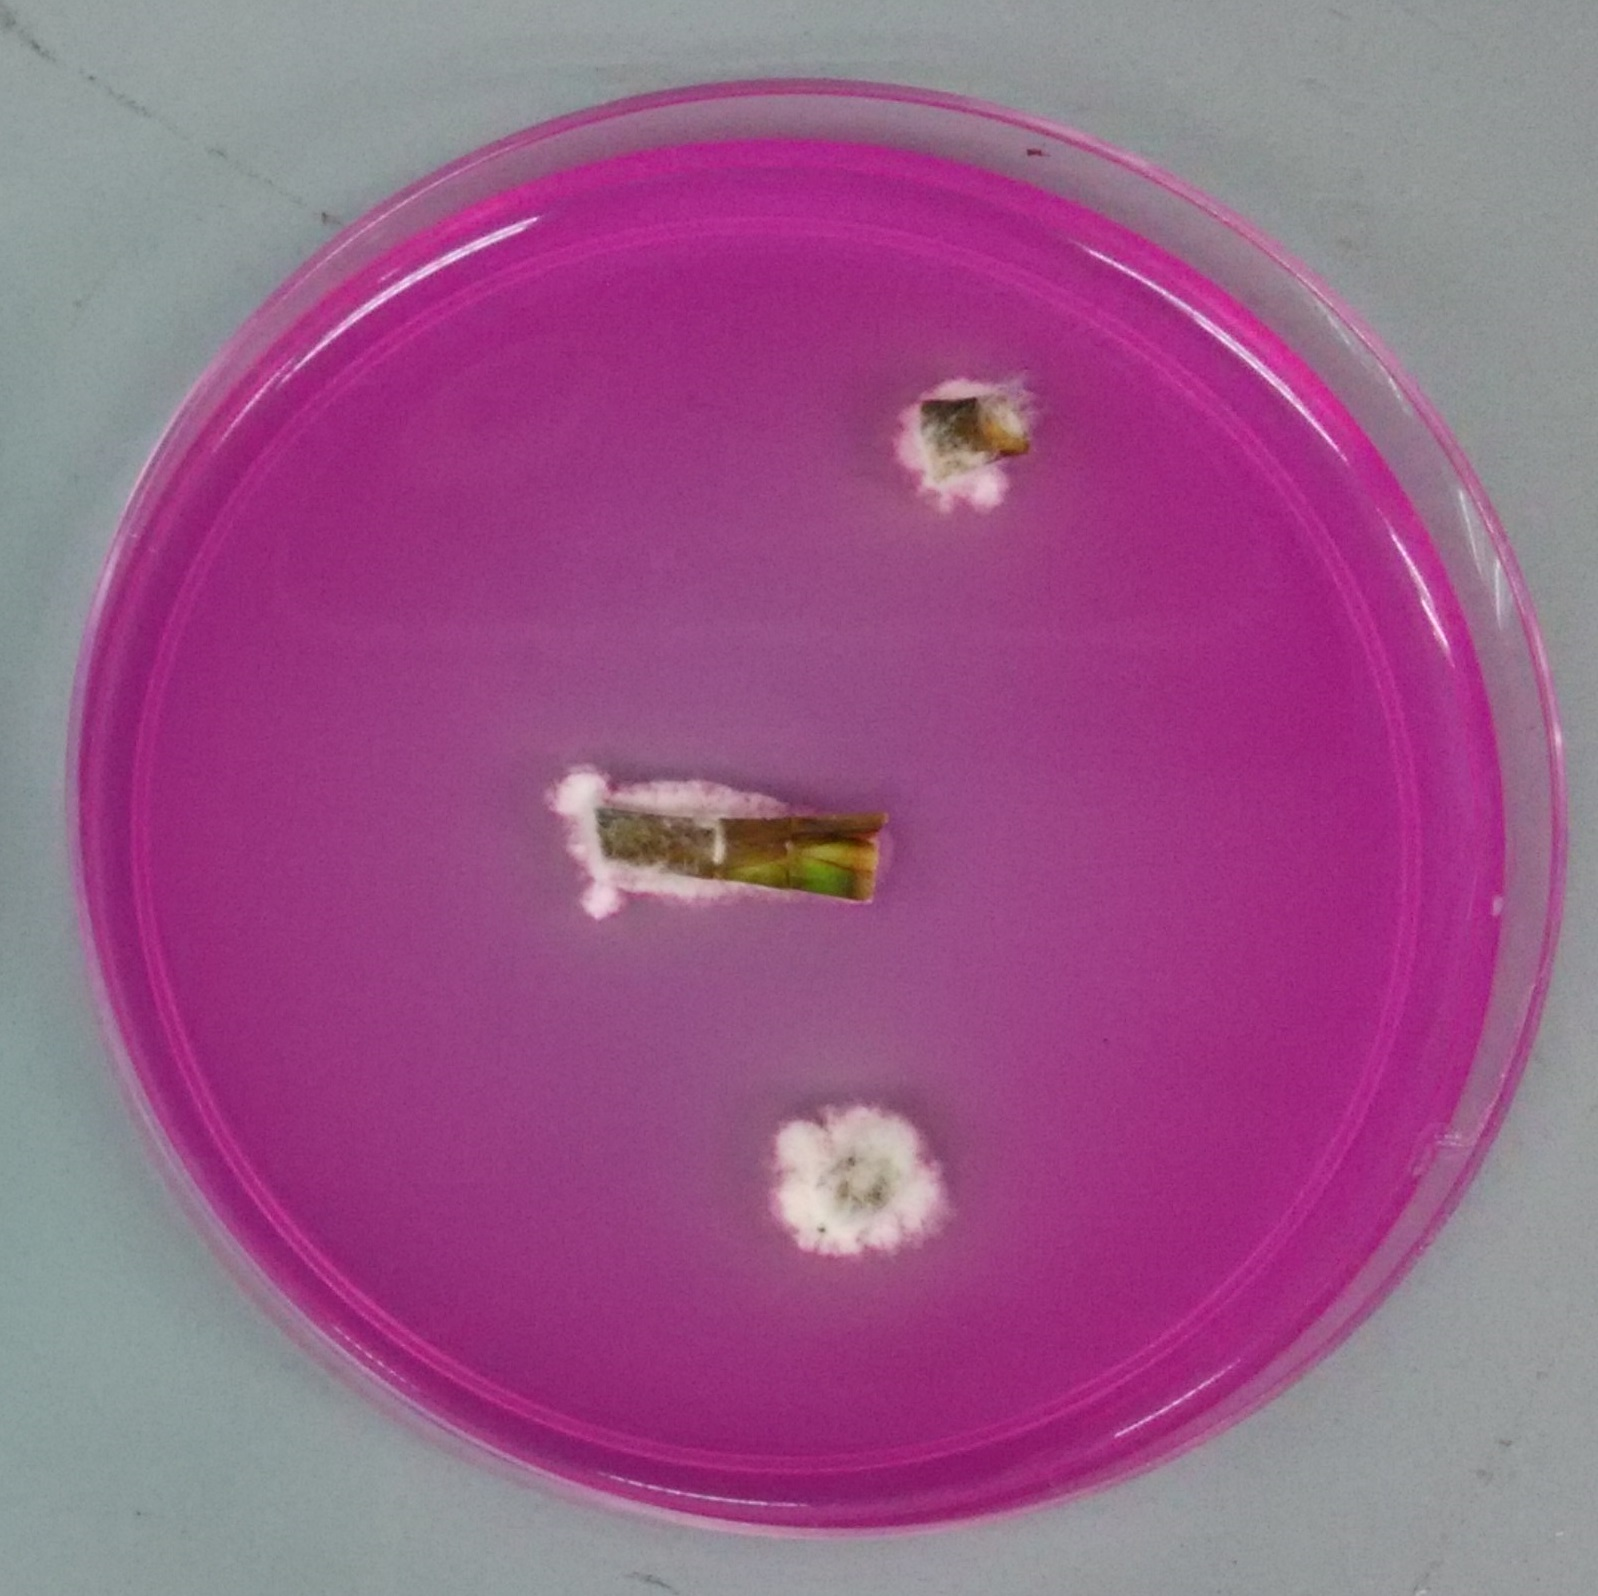 Re-isolation of introduced endophyte from stem in potato dextrose rose bengal agar. Photo credit to Carrie.